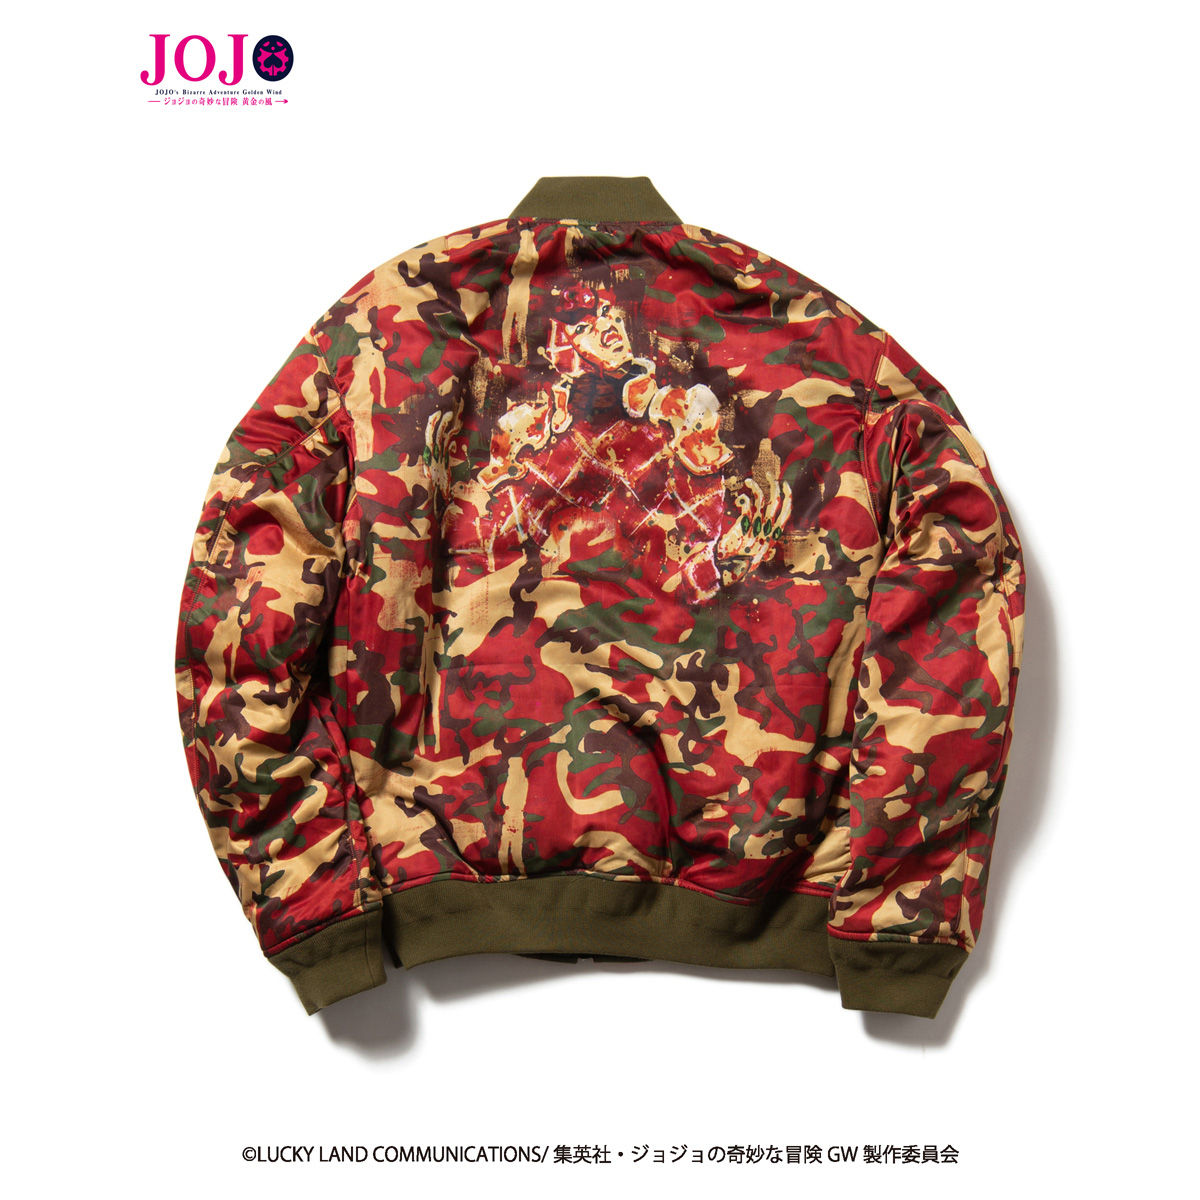 Emperor Crimson/Zipper Man Reversible Bomber Jacket—JoJo's Bizarre Adventure: Golden Wind/glamb Collaboration